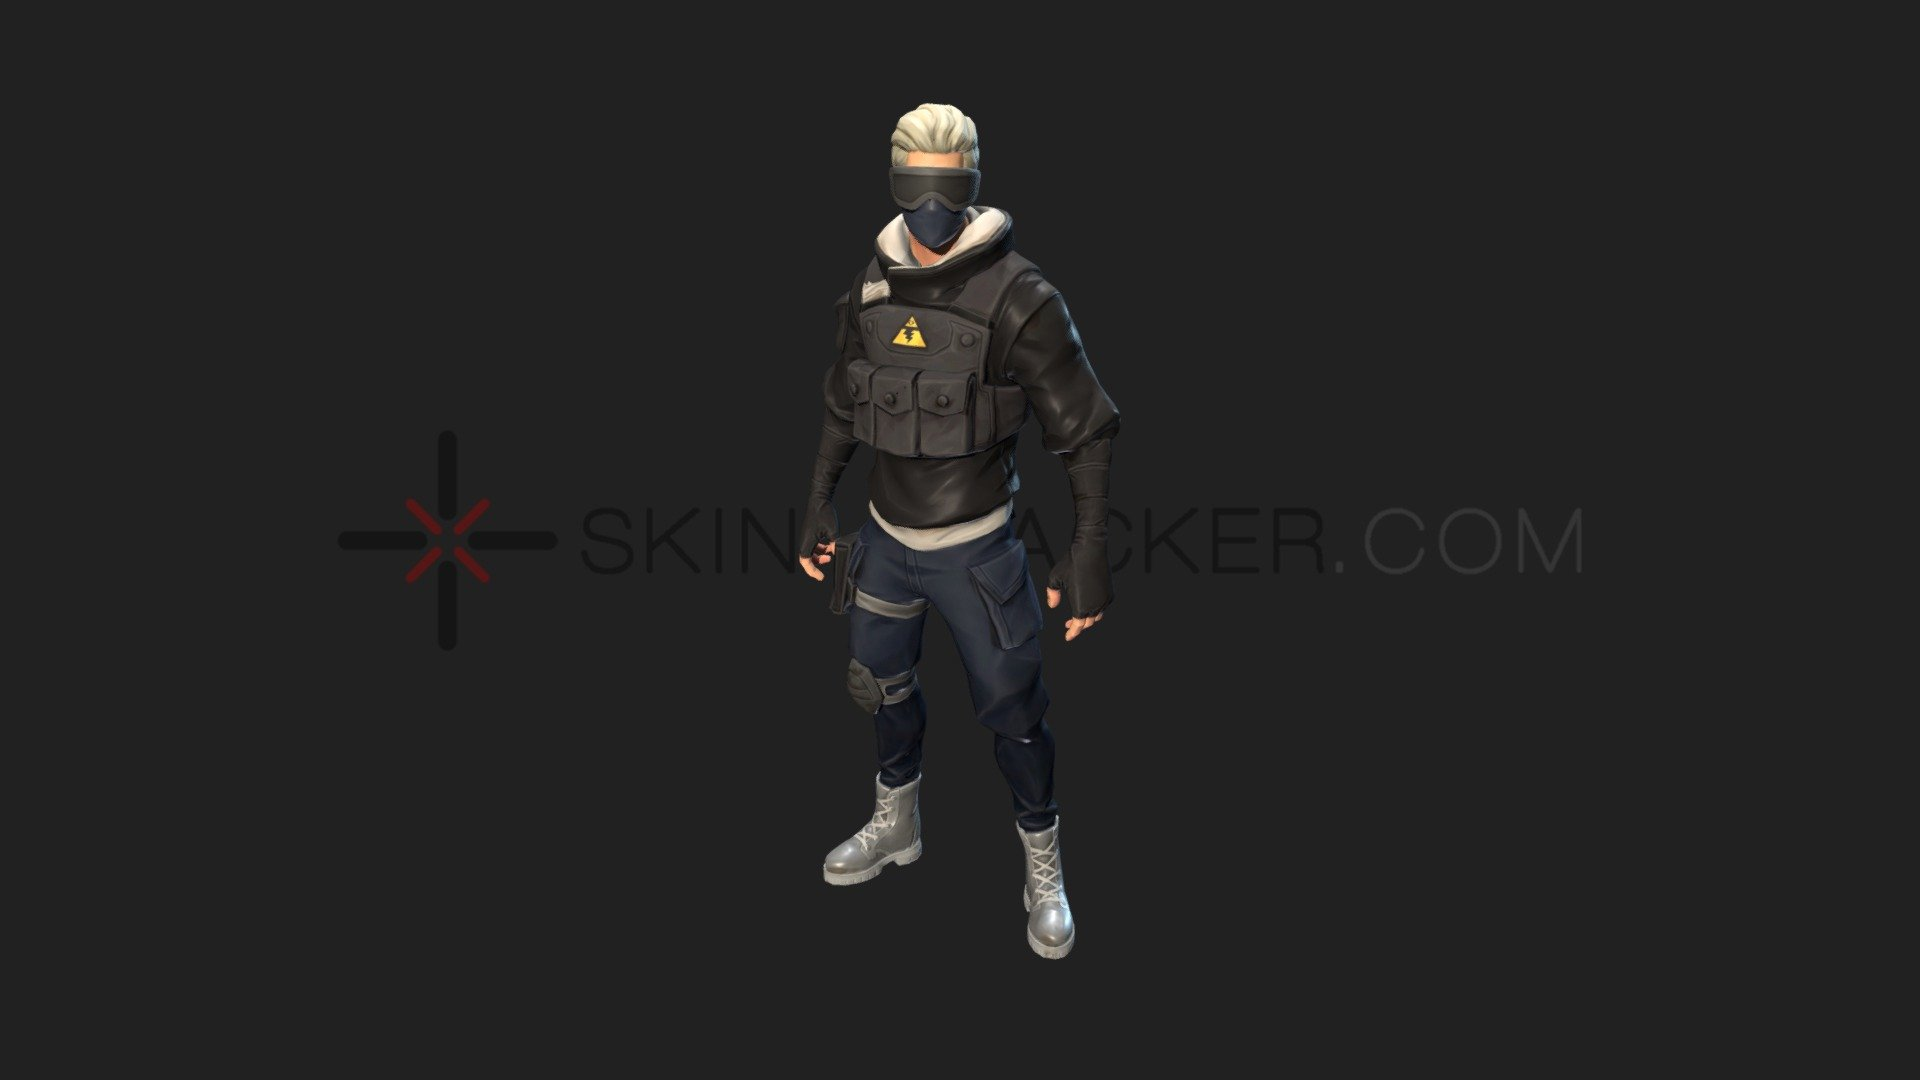 Verge Fortnite Skin Posted By Michelle Cunningham